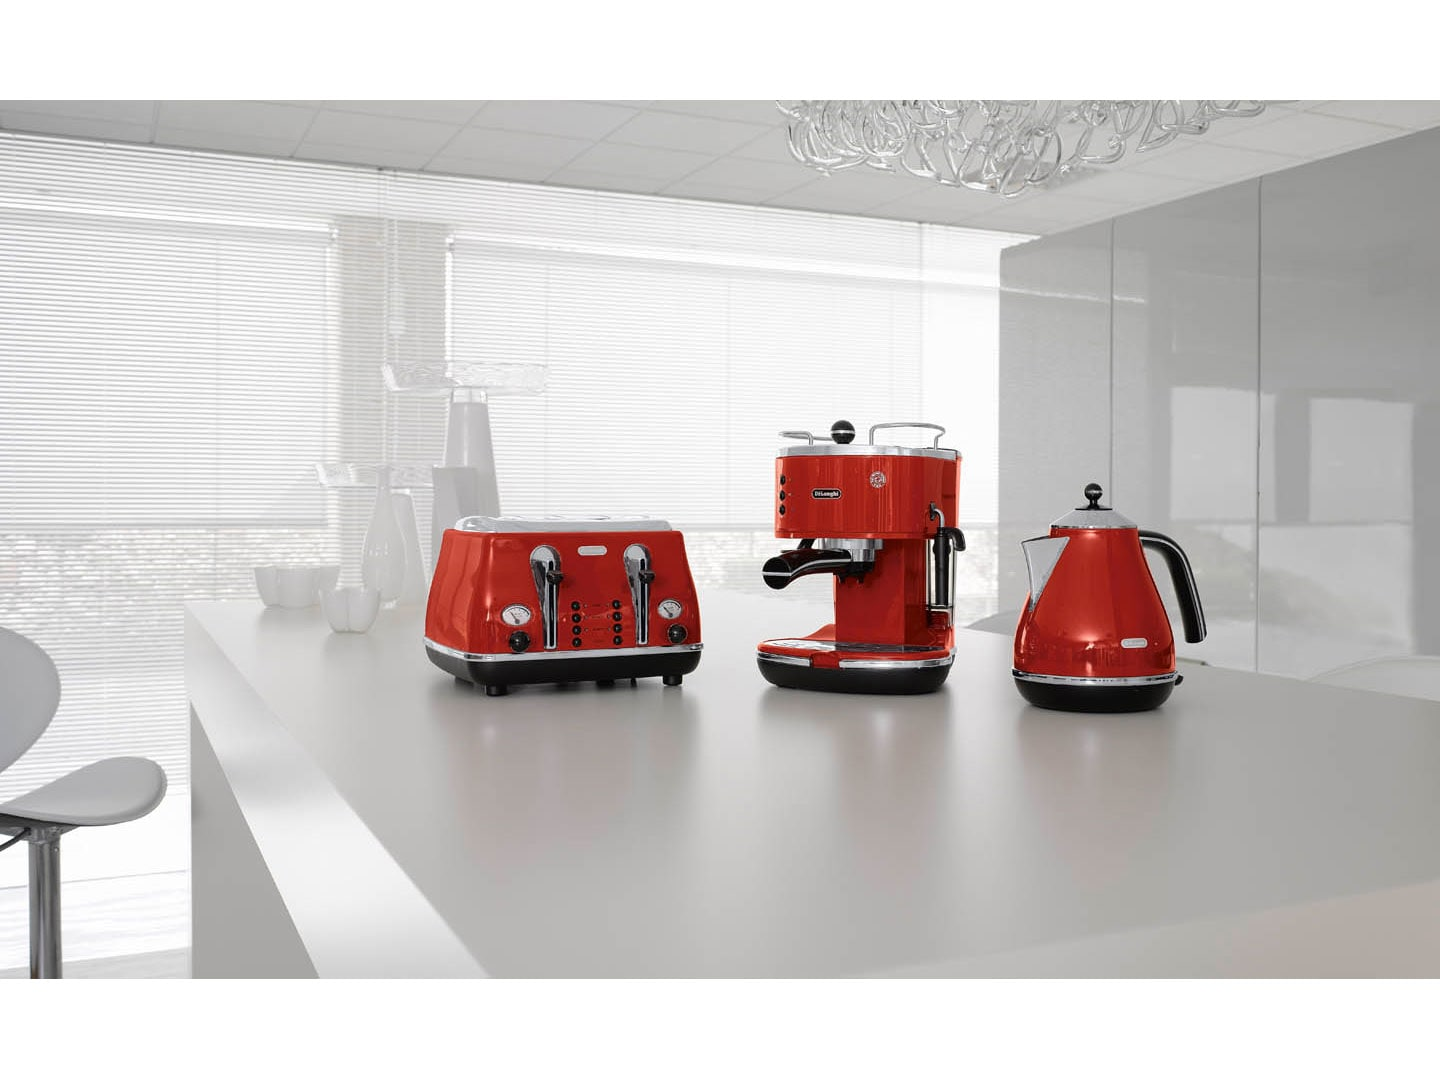 Icona Pump Espresso machine ECO310R - Red with matching toaster and kettle by delonghi New Zealand Pump Espresso - Red